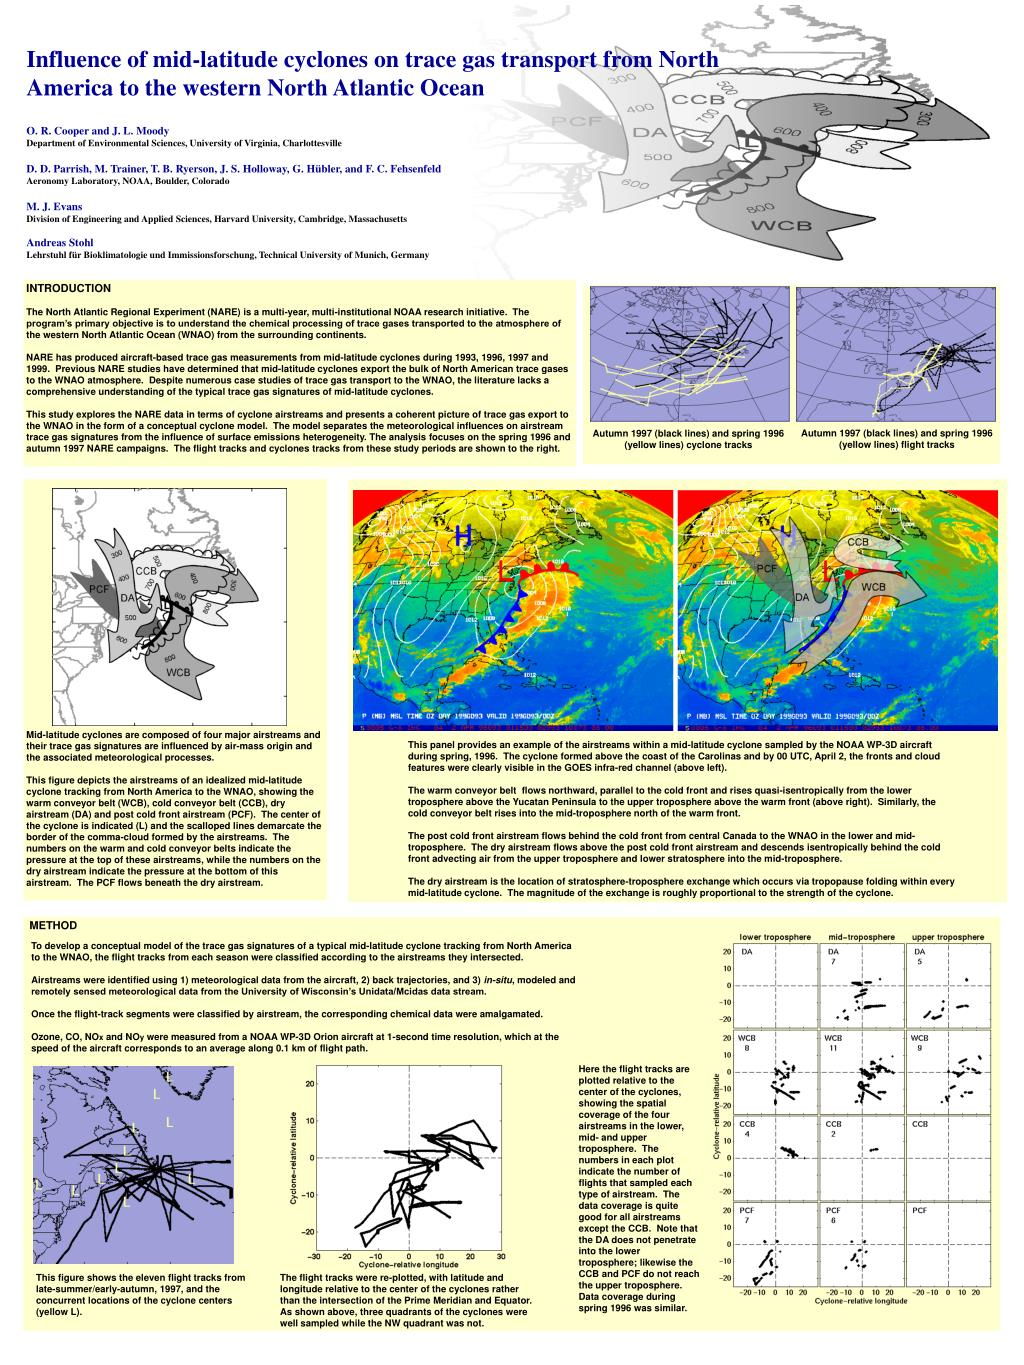 Influence of mid-latitude cyclones on trace gas transport from North America to the western North Atlantic Ocean